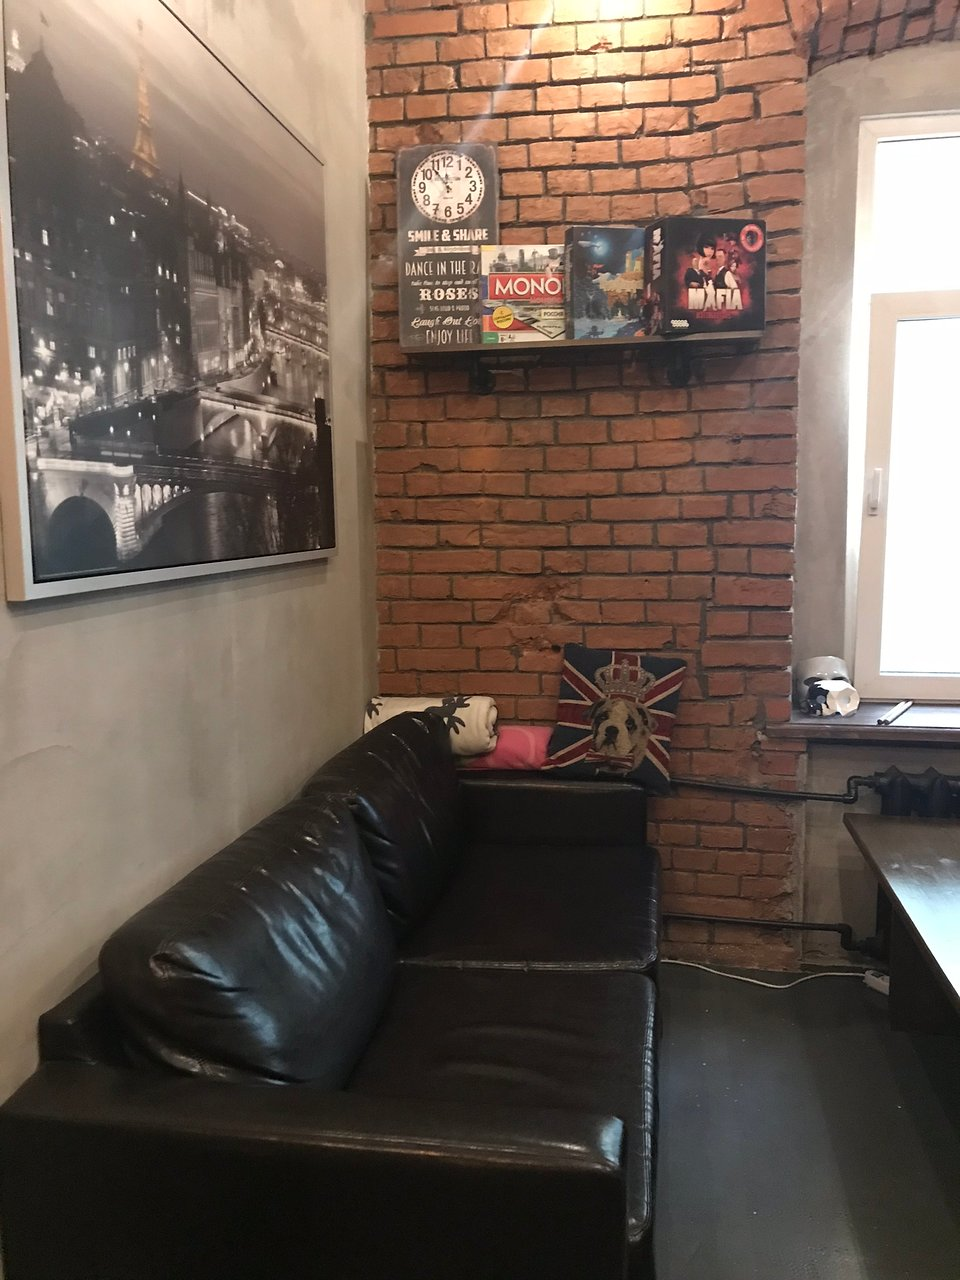 45 parallel - restaurant in Moscow: description, prices, reviews